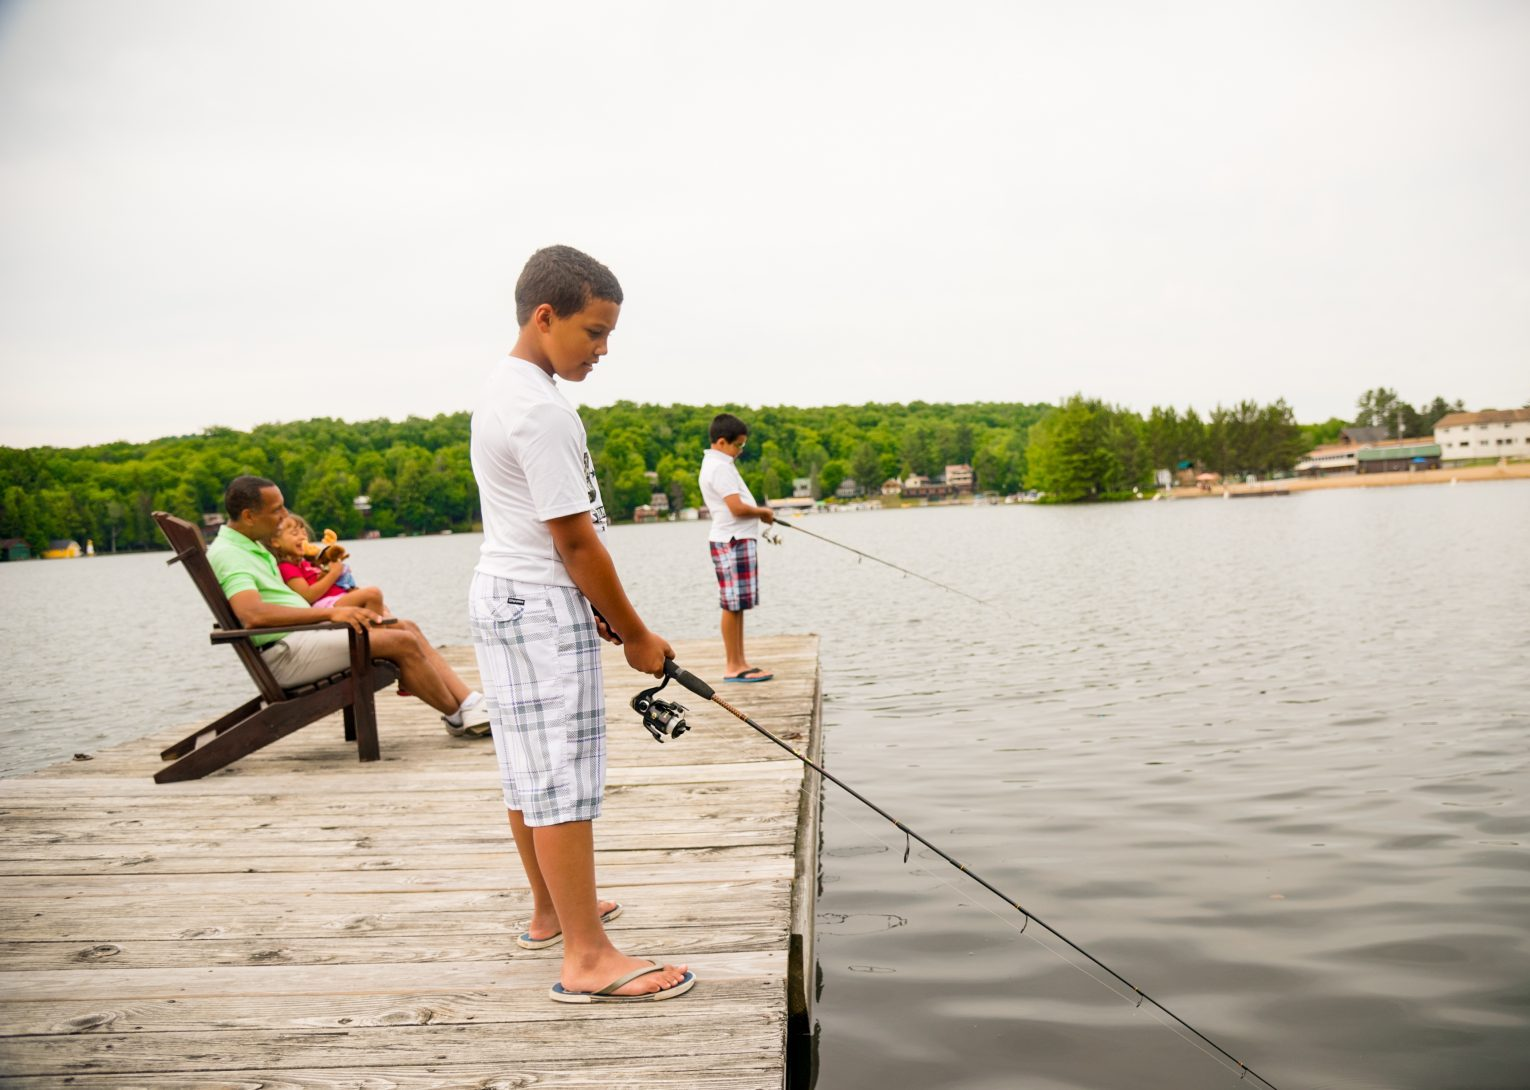 A family on a dock with the two boys fishing